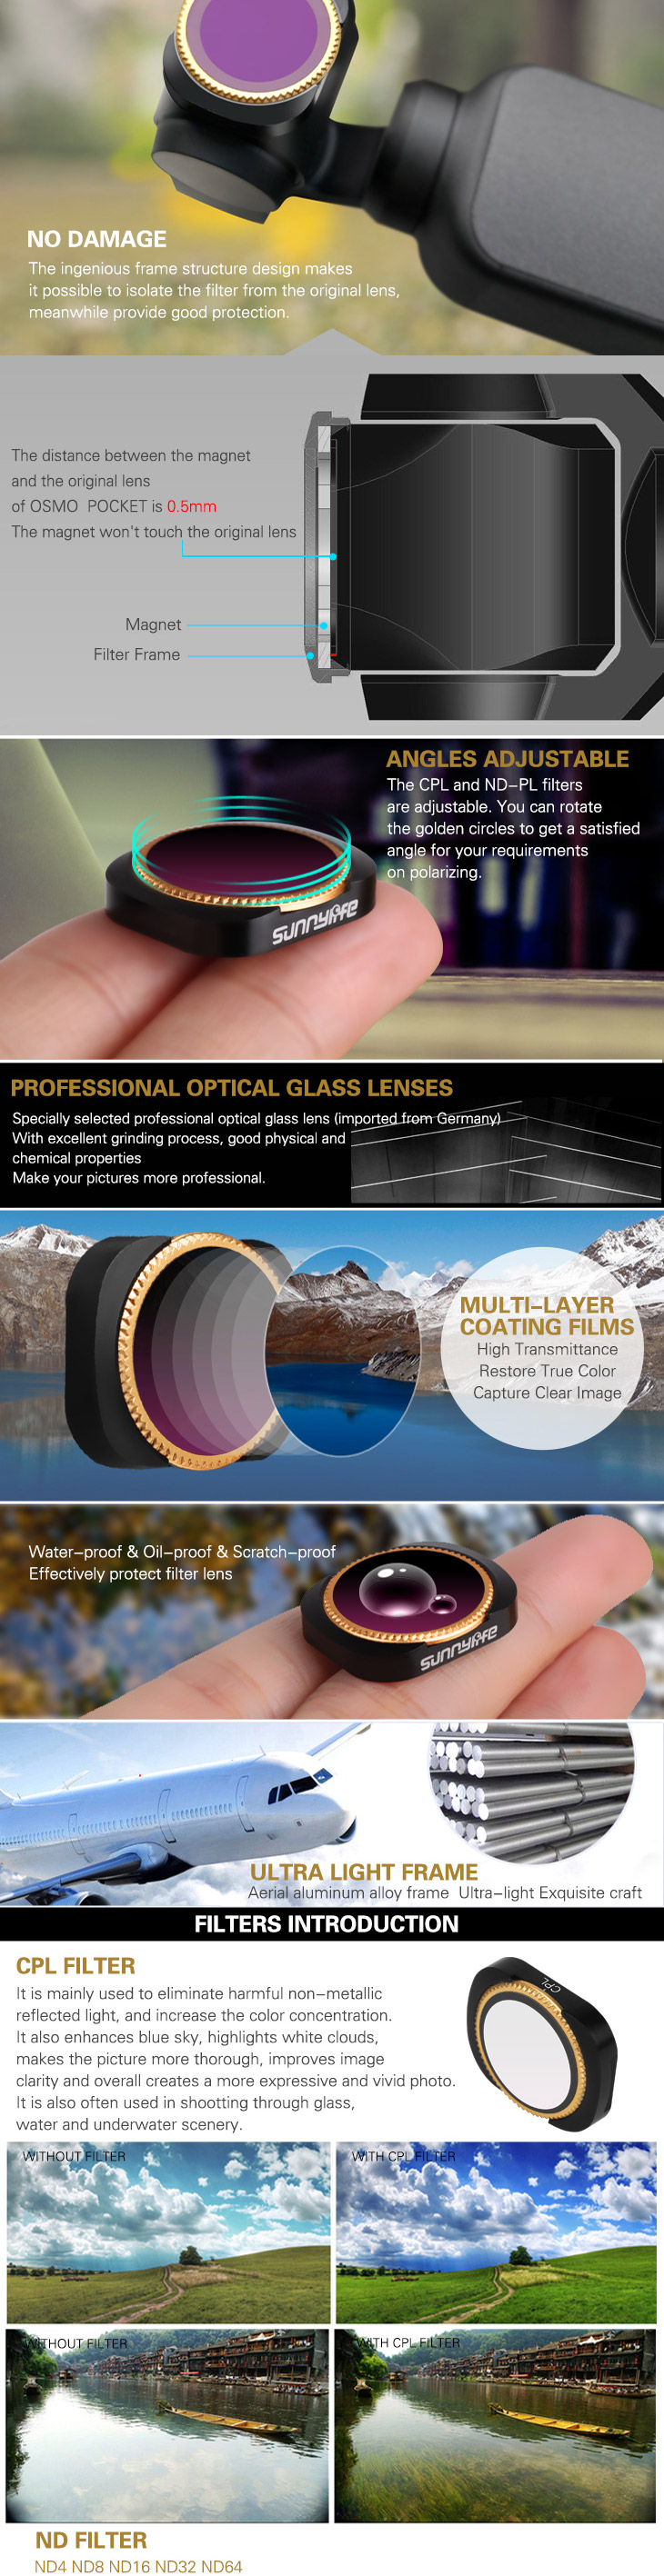 IN Stock UV CPL ND4PL ND8PL ND16 PL ND 32 PL ND 64 PL Camera Lens Filter for DJI OSMO POCKET Gimbal Accessories 6